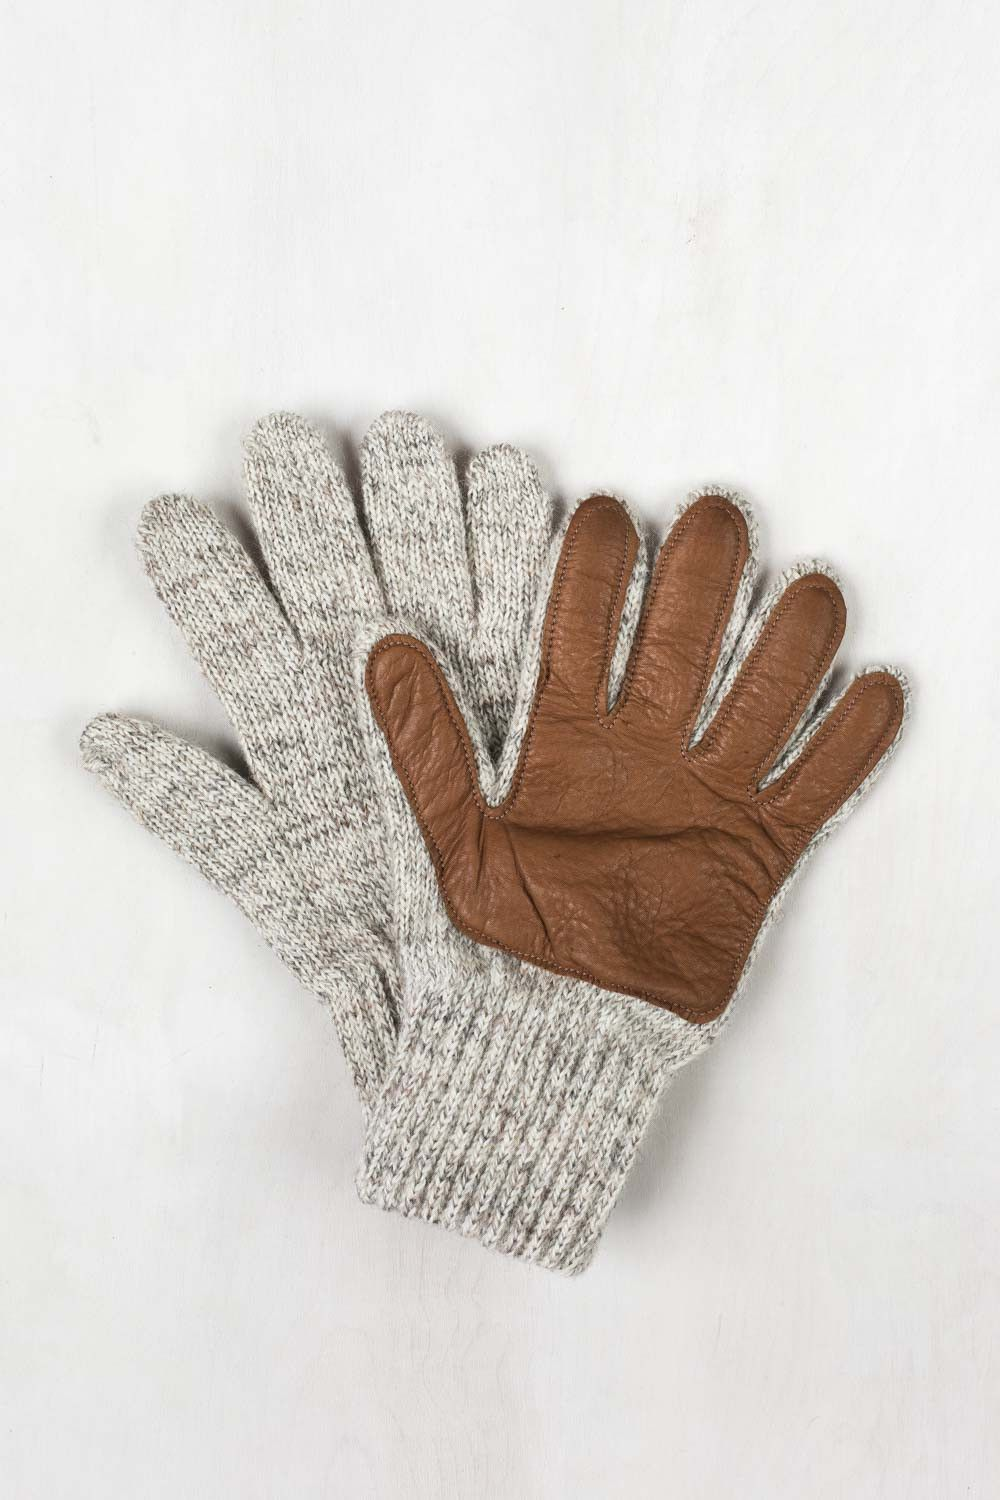 Men's Gloves Fashion Black Short Half Finger Fingerless Wool Knit Wrist Glove Winter Warm Gloves Workout For Women And Men Drop Shipping Reputation First